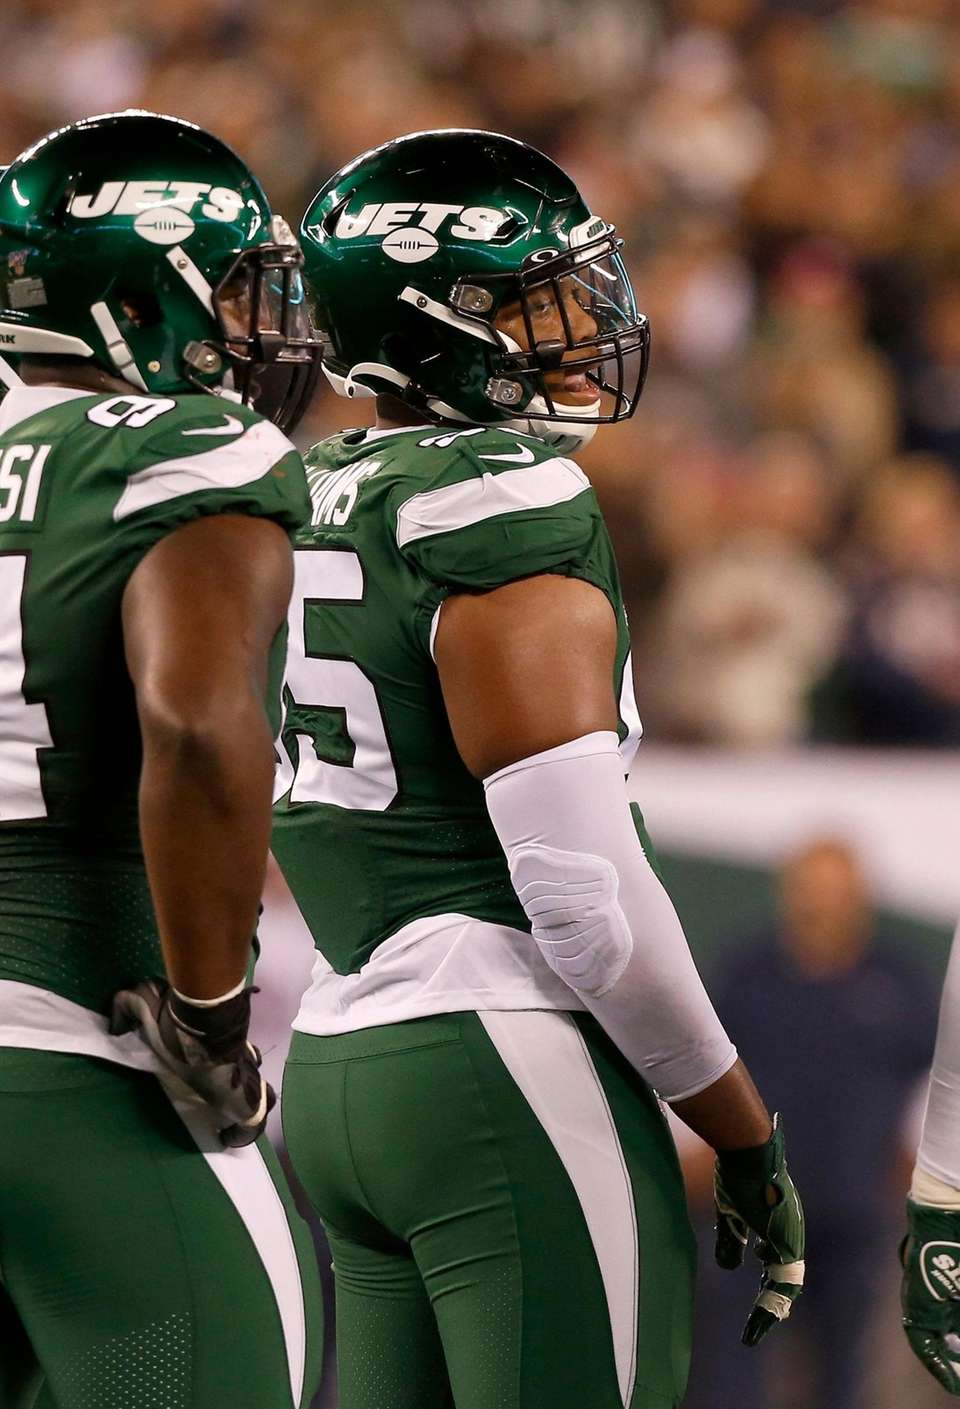 Quinnen Williams #95 of the New York Jets